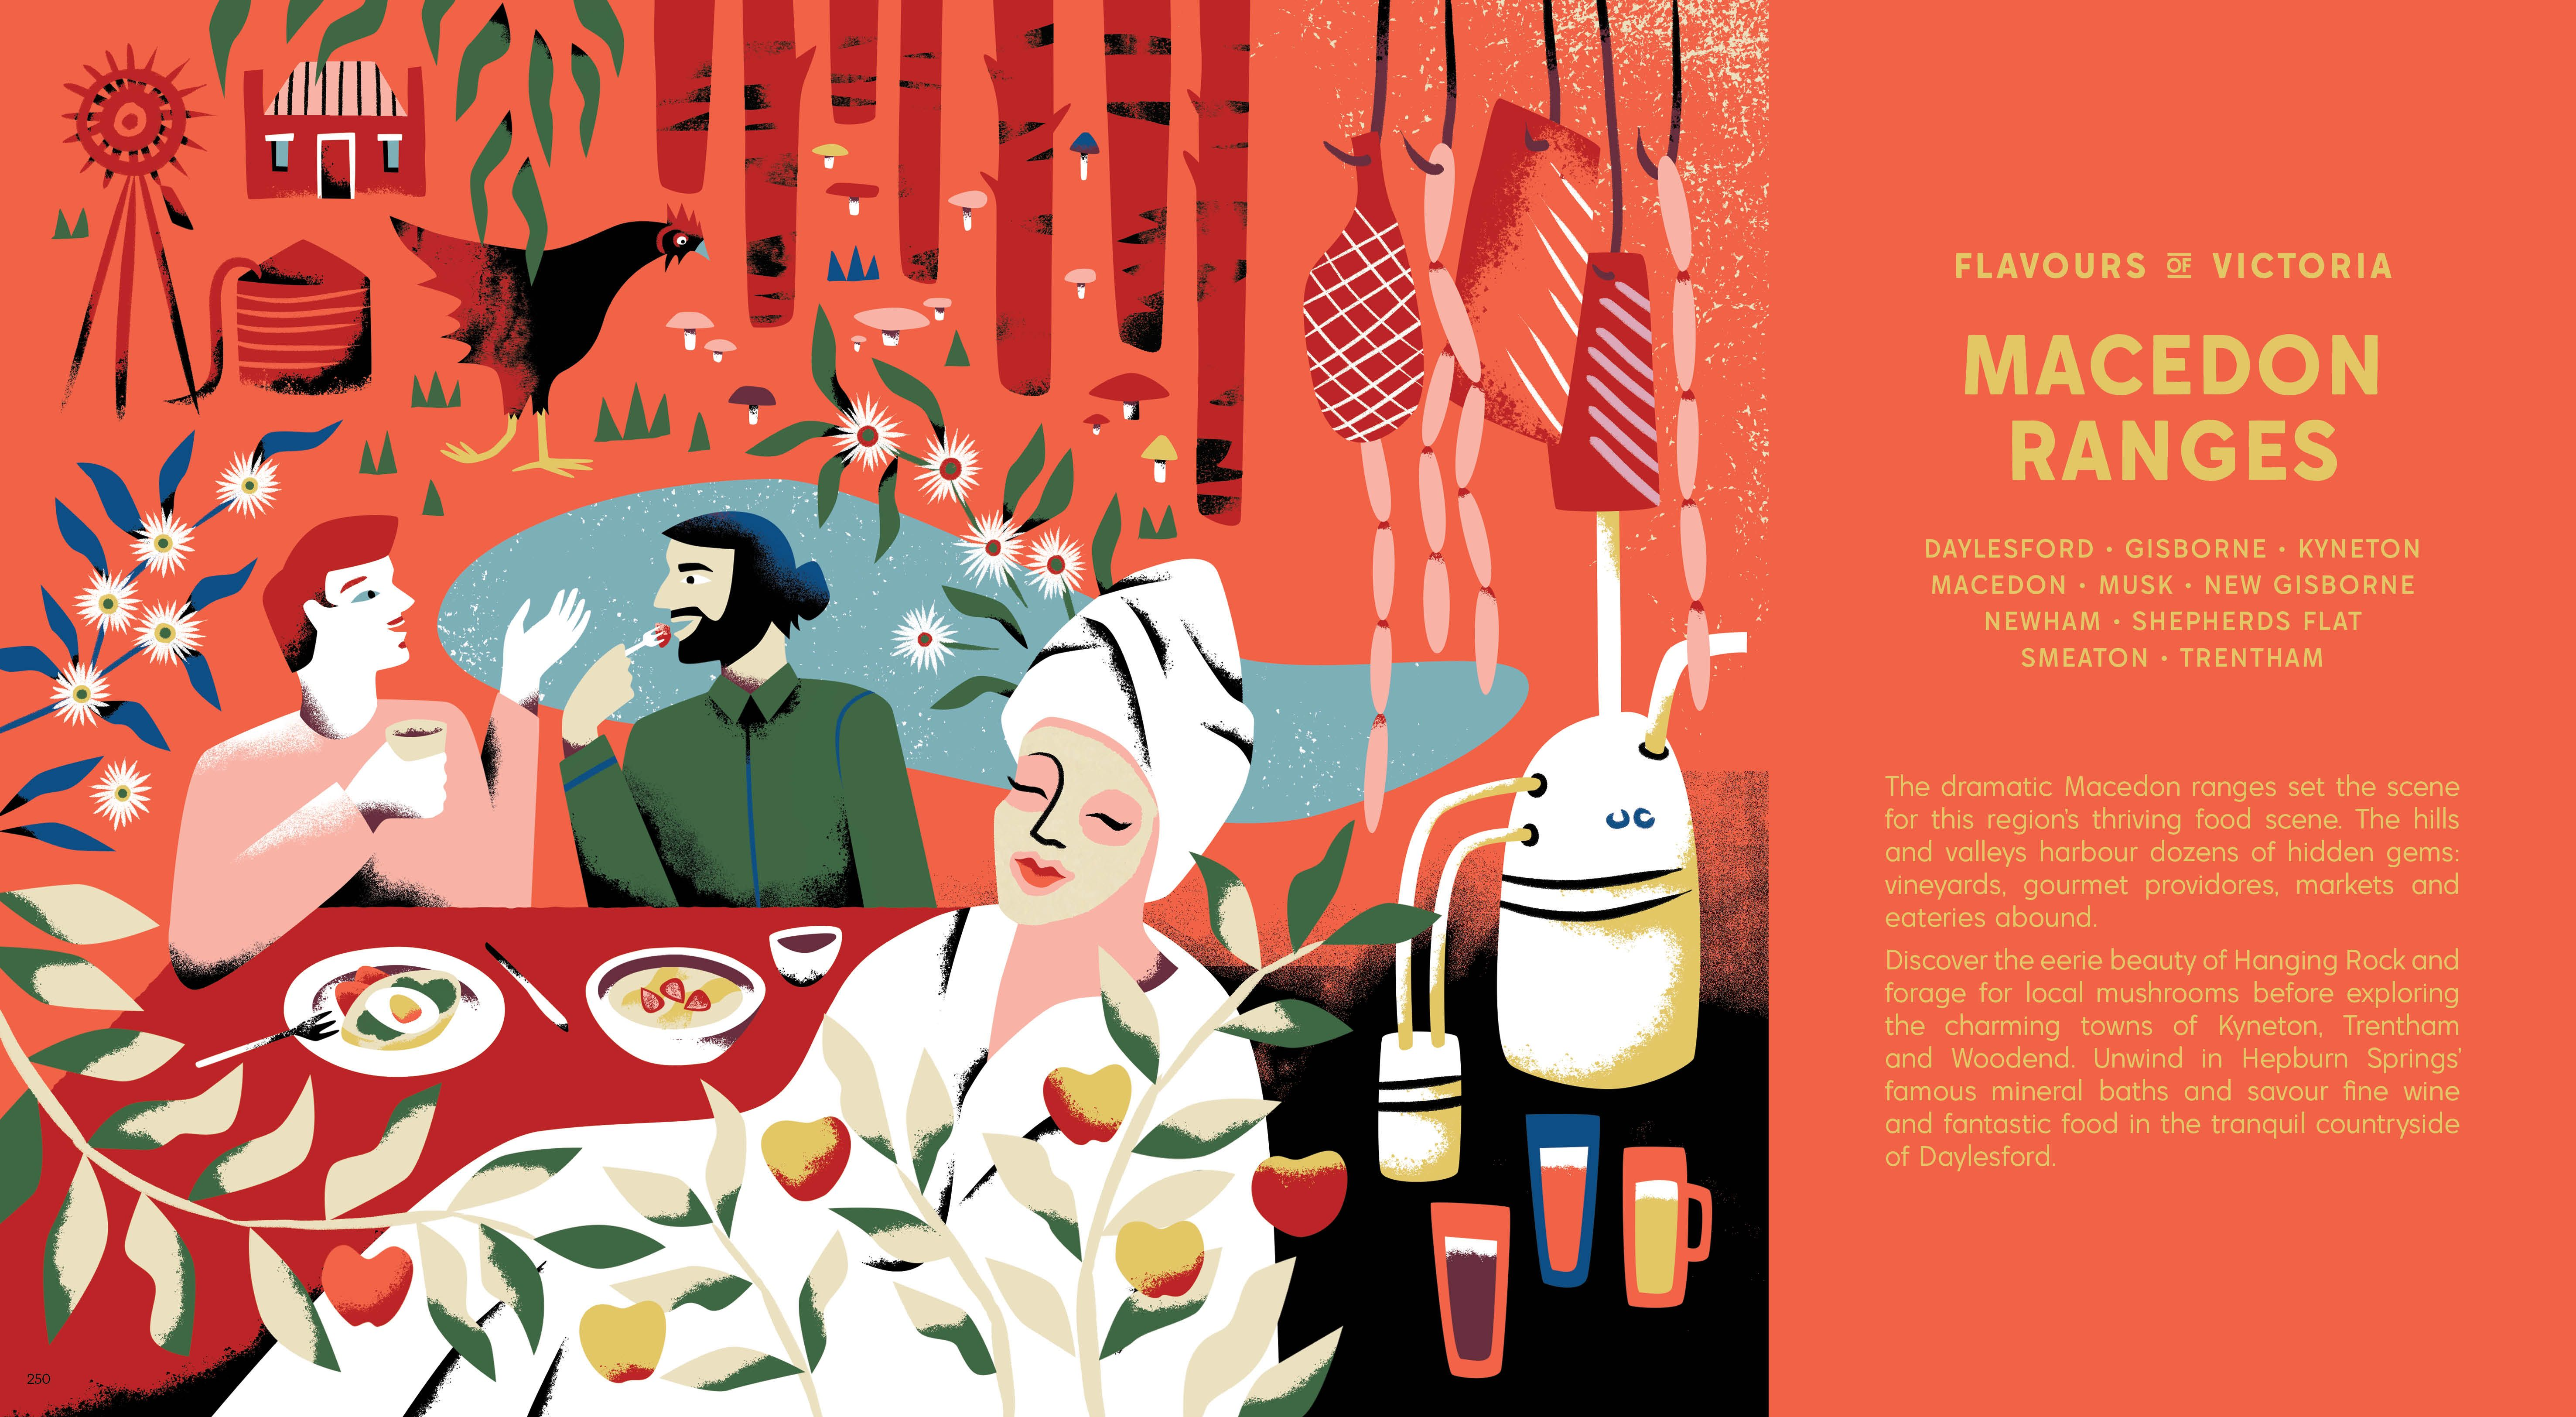 Macedon Ranges Illustration By Antra Svarcs Flavours Of Victoria Warna